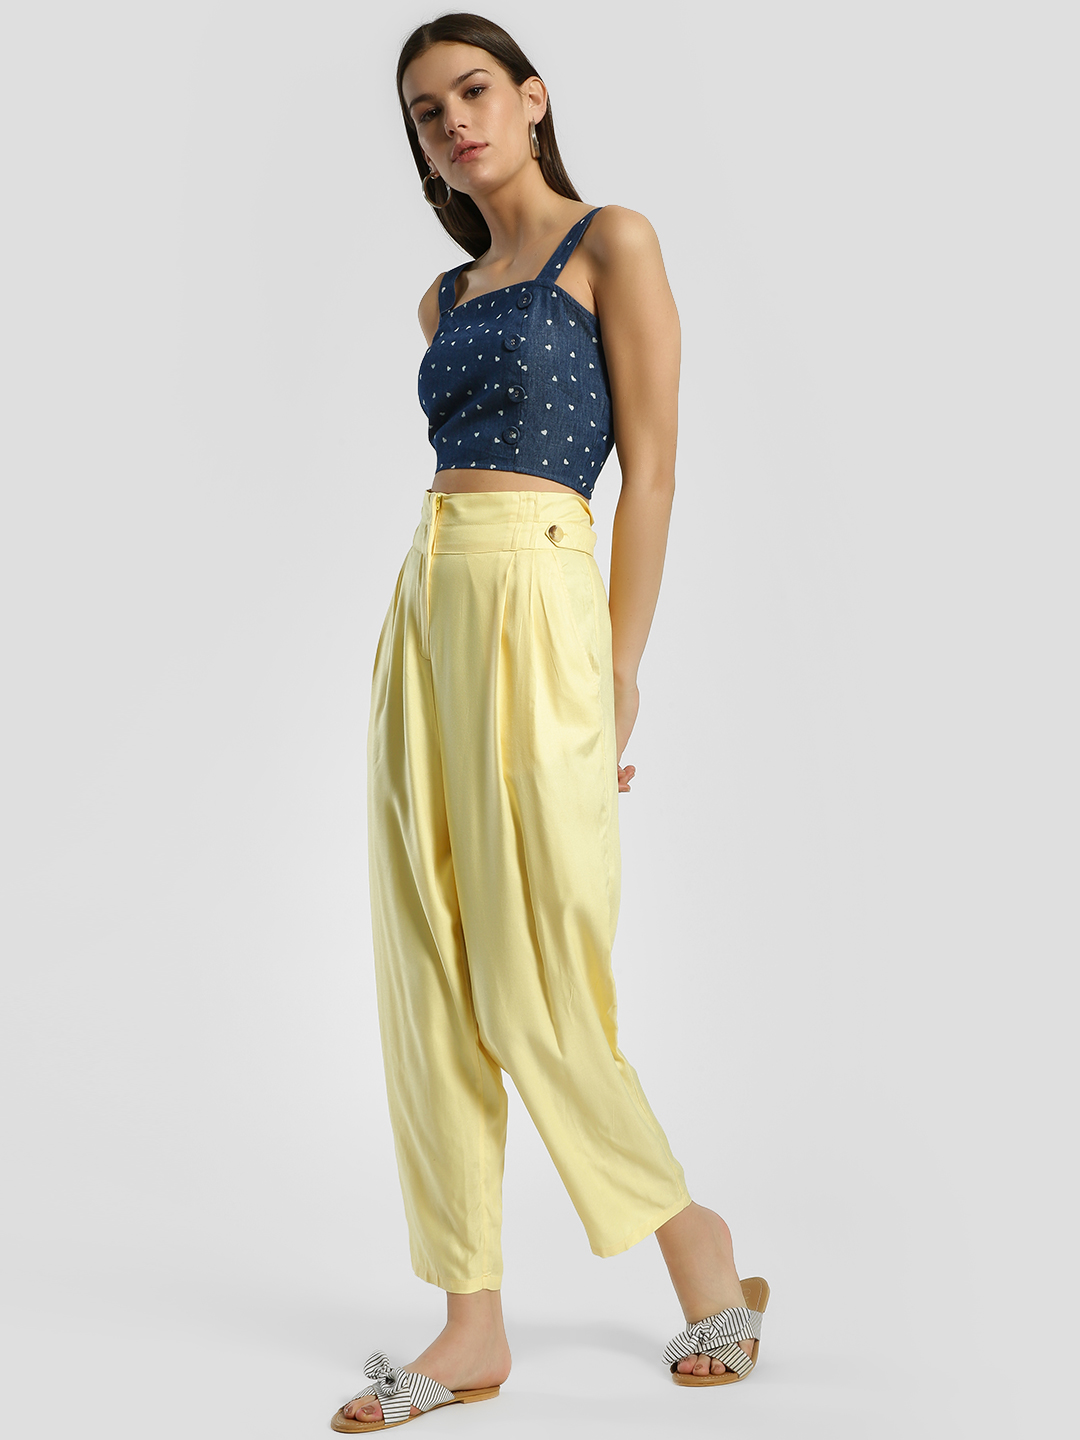 Femella Yellow High Waist Paperbag Pants 1